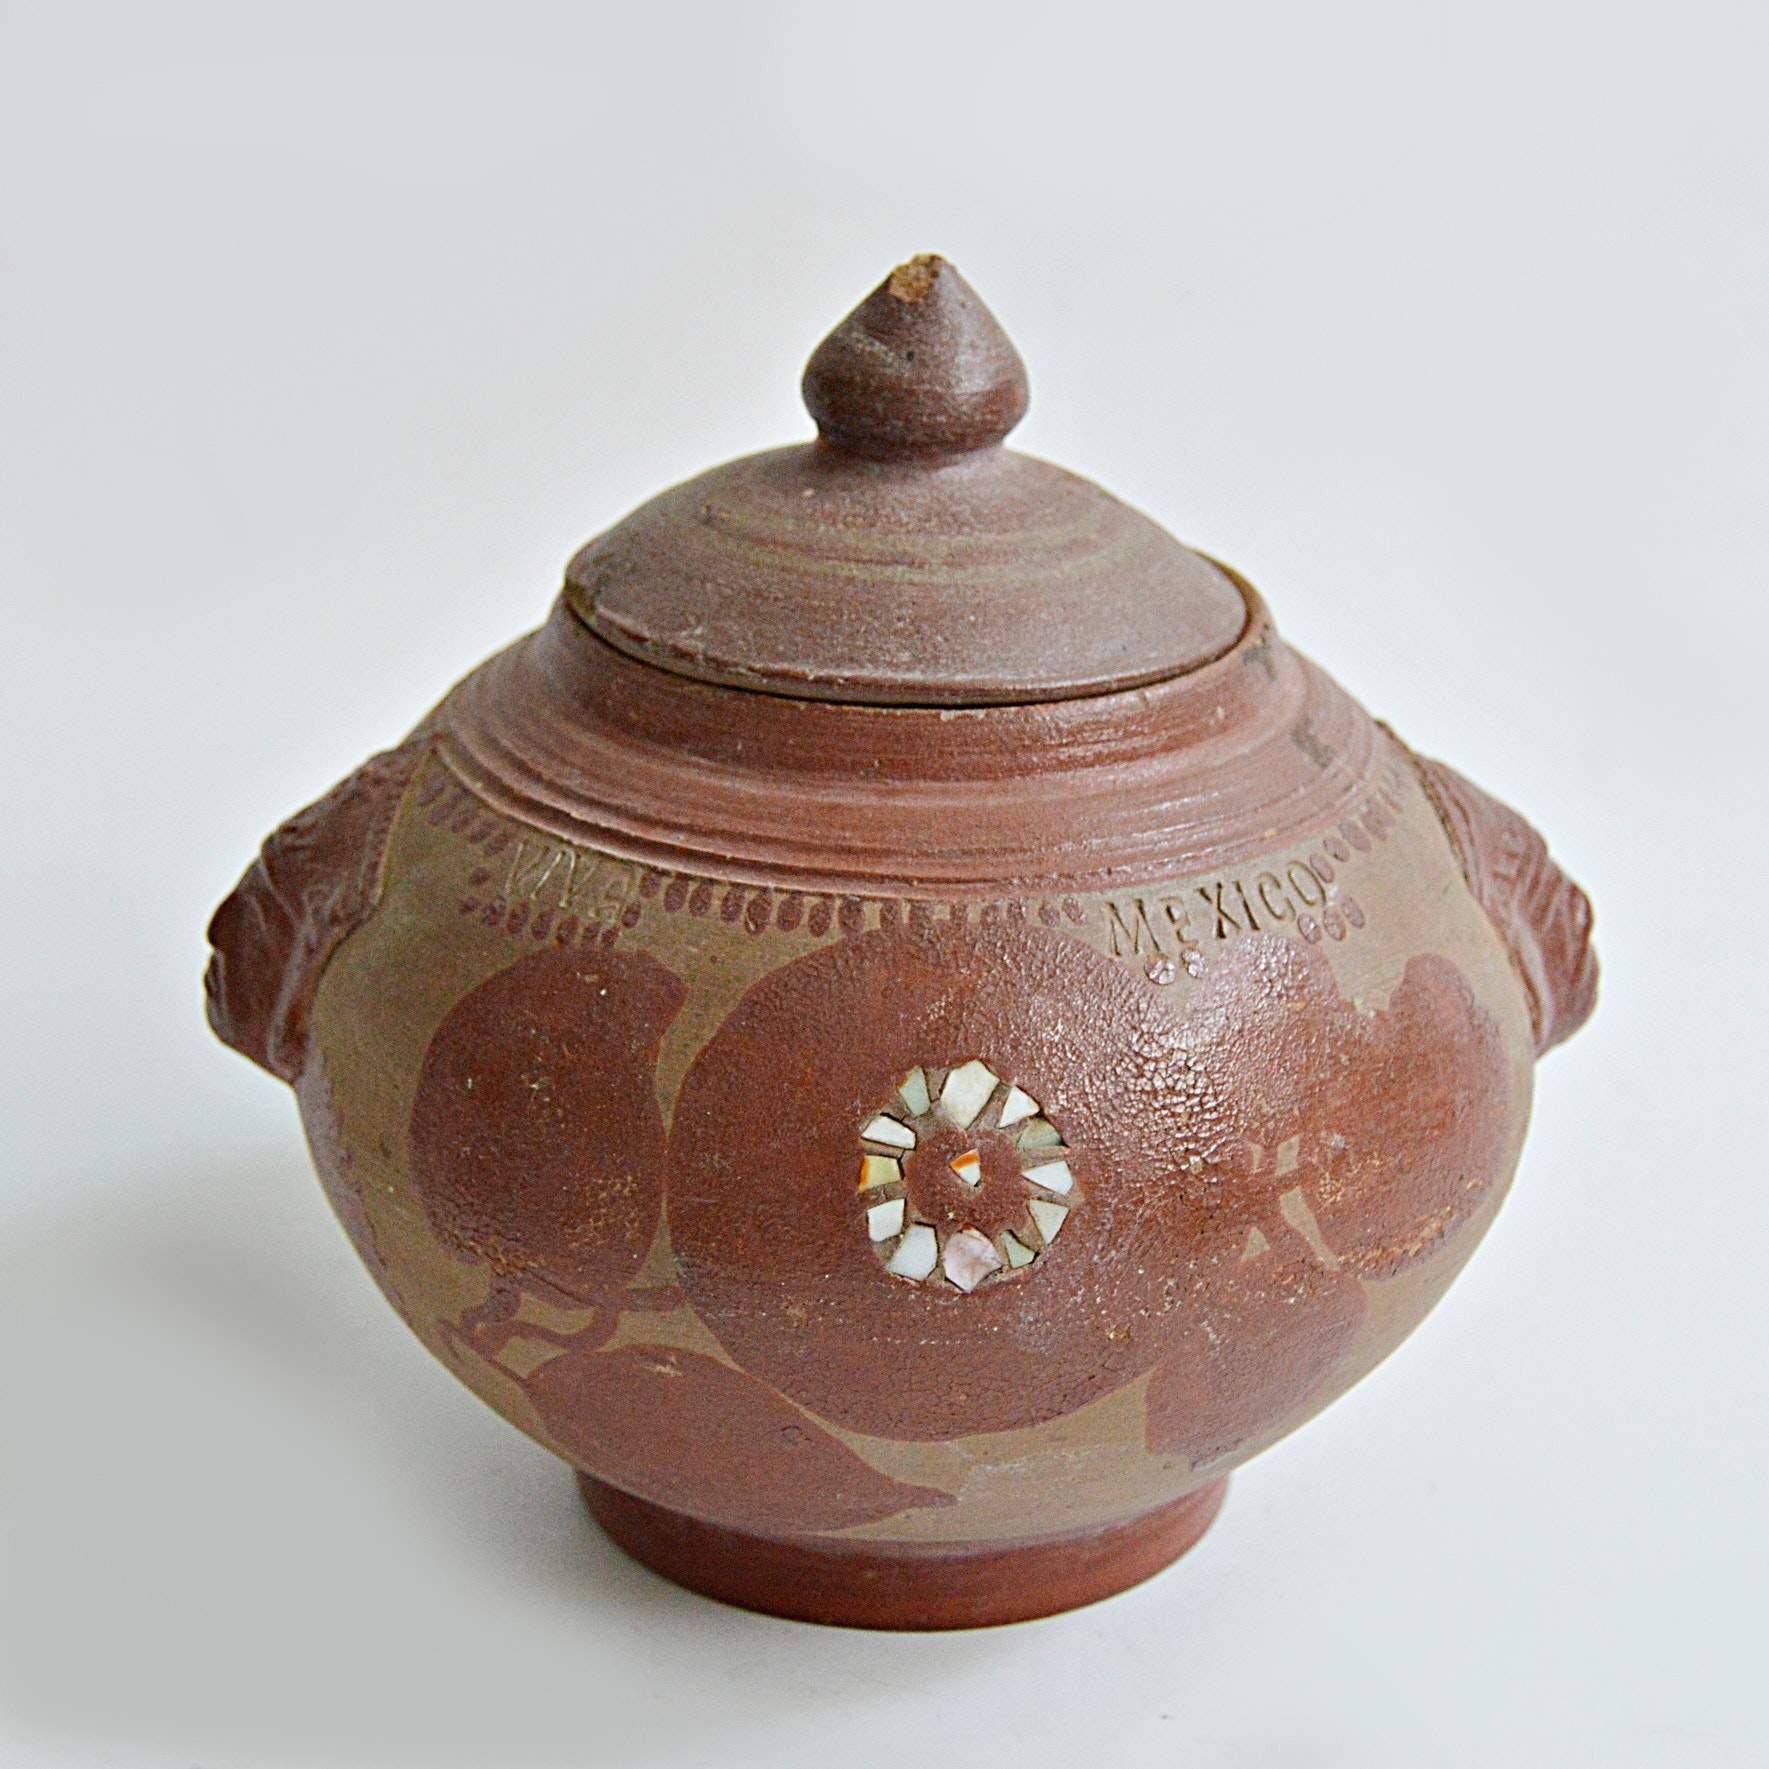 19th Century Mexican Hand Decorated Terra Cotta Lidded Jar with Shell Inlays